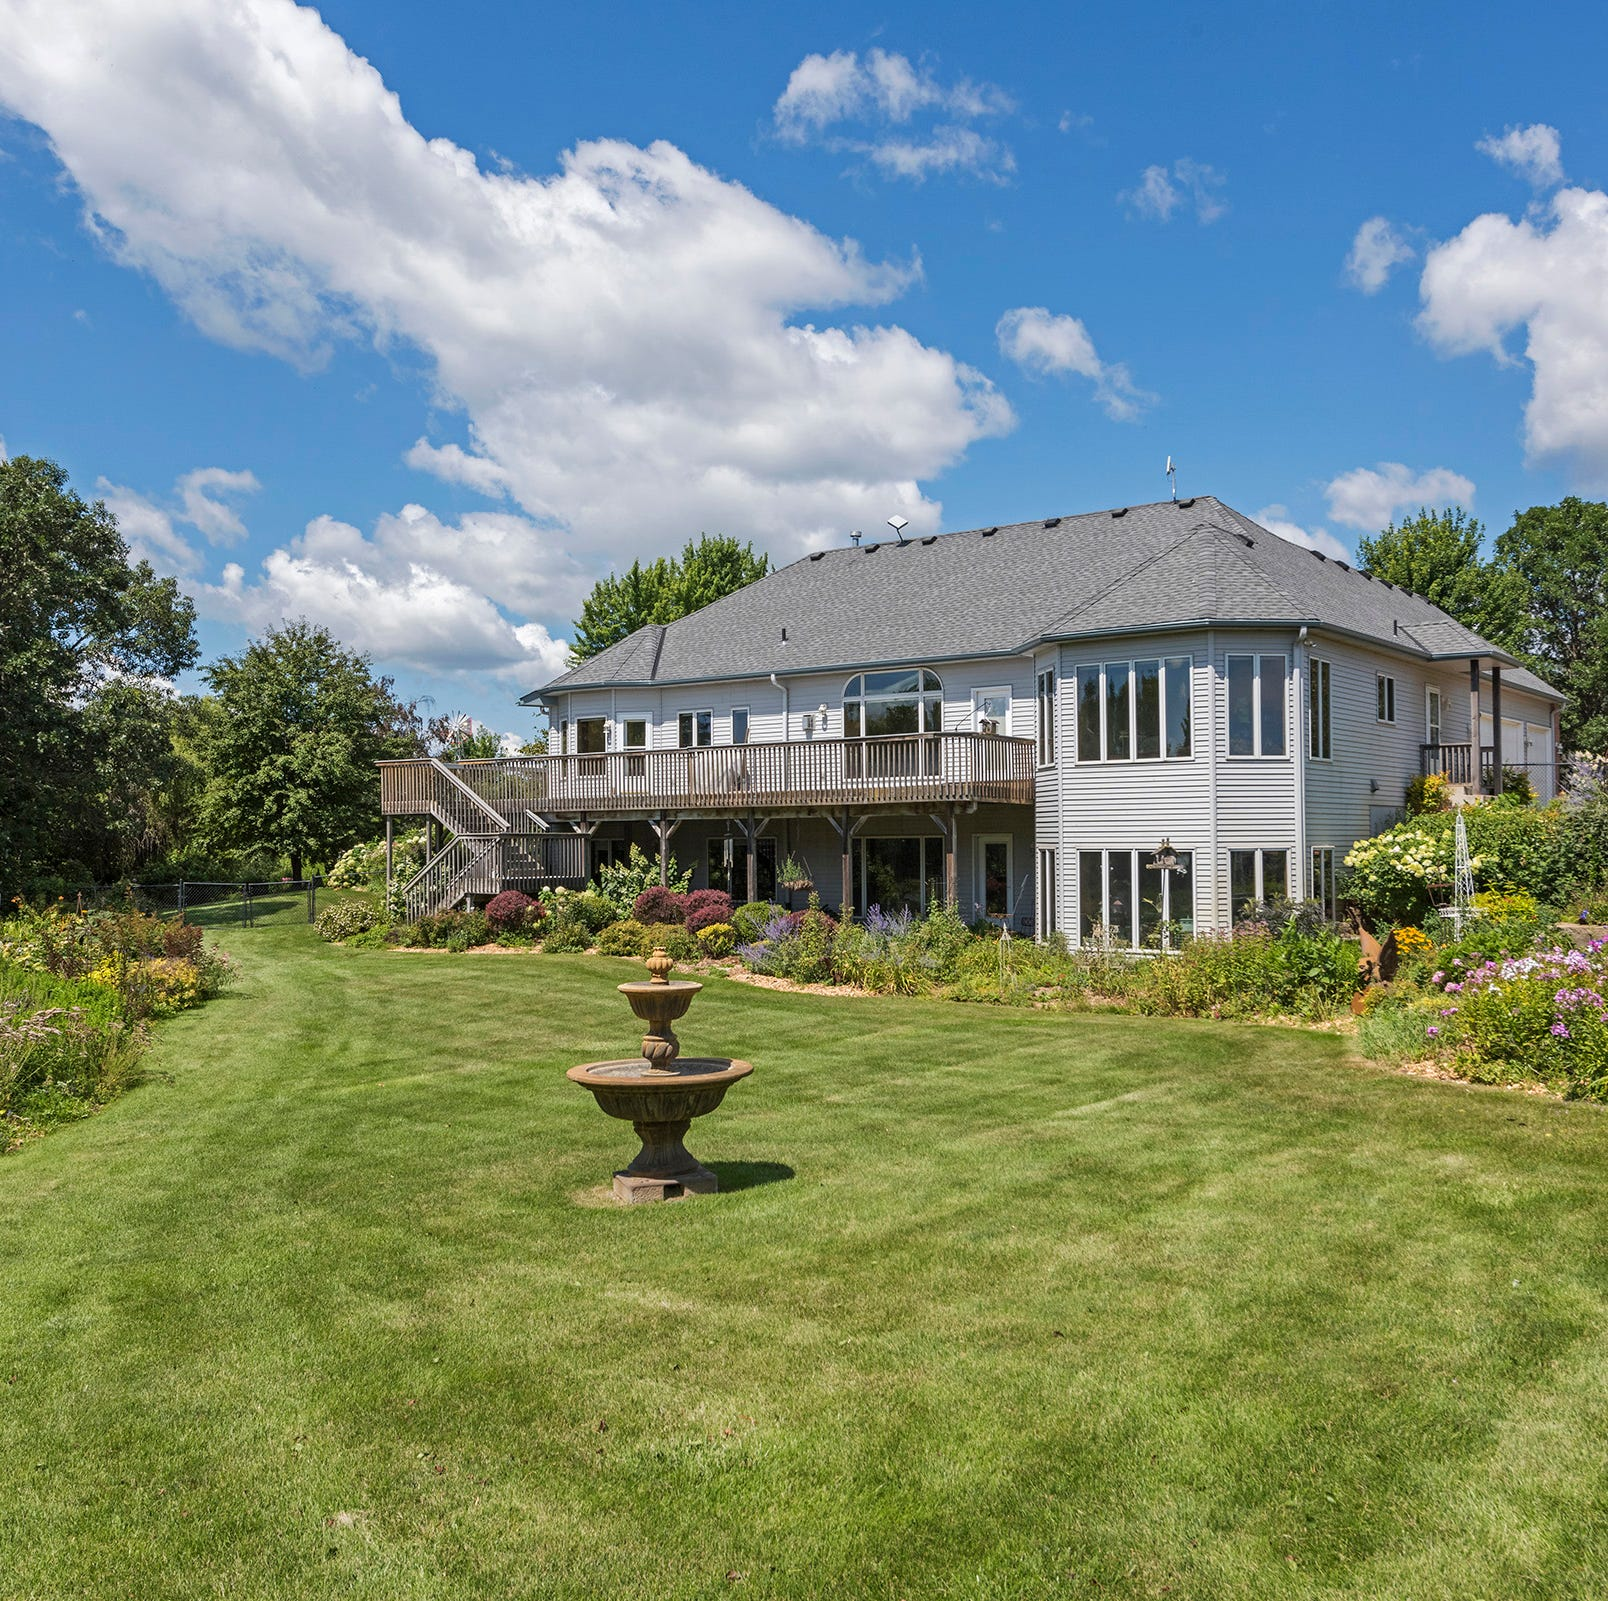 Mansion on the market: Peaceful retreat on 10 acres